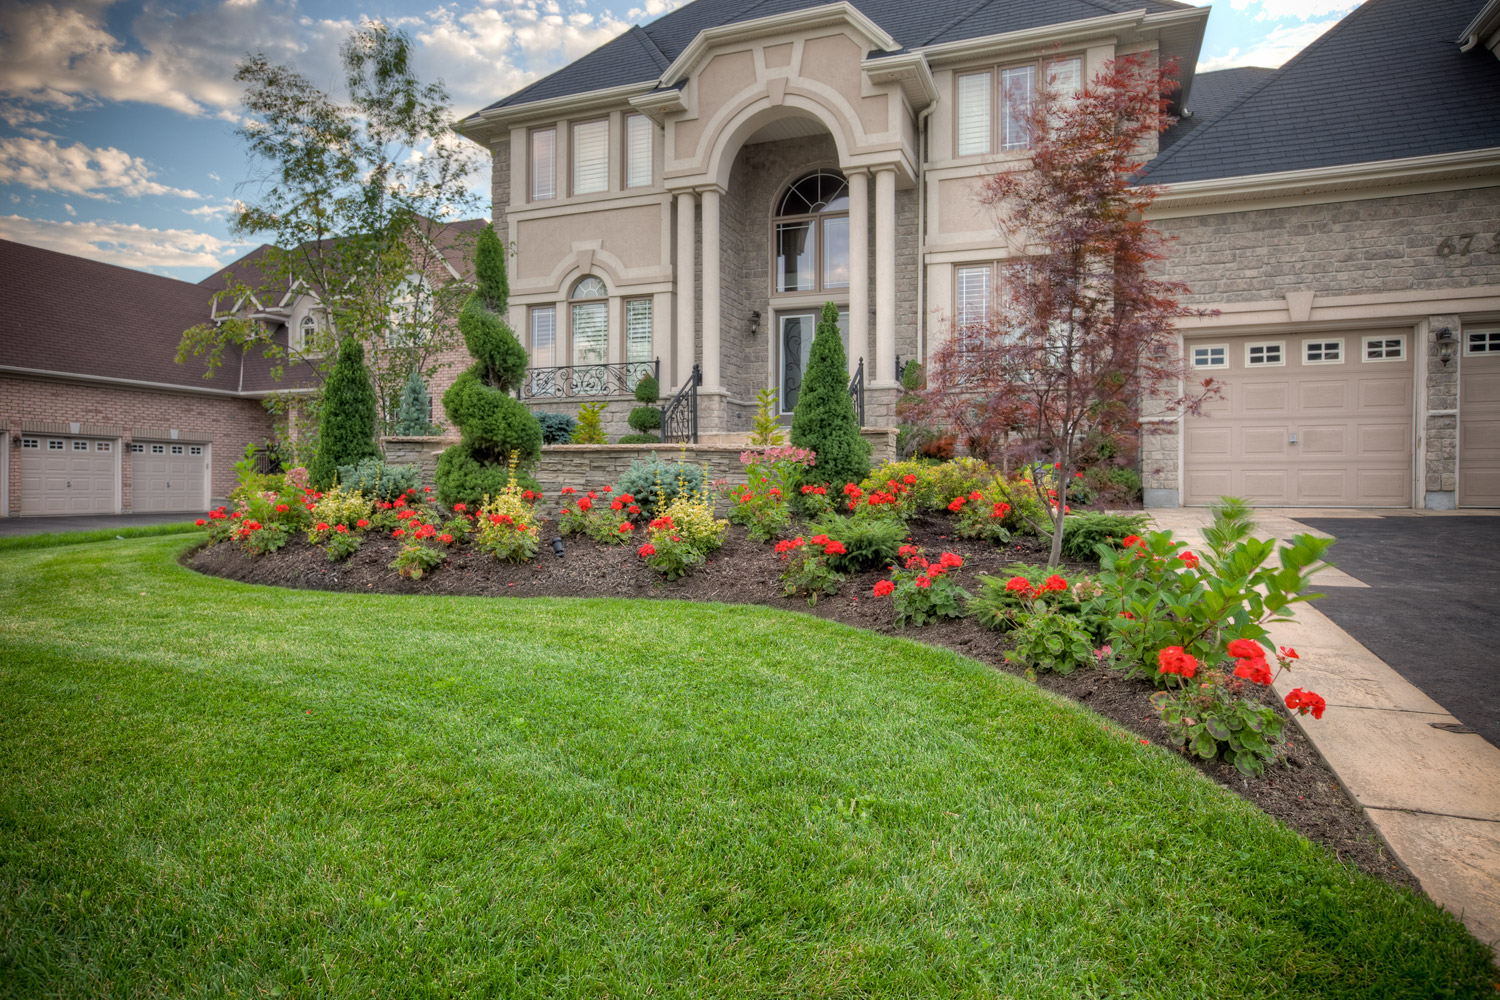 Some ideas of front yard landscaping for a small front for House front yard landscaping ideas